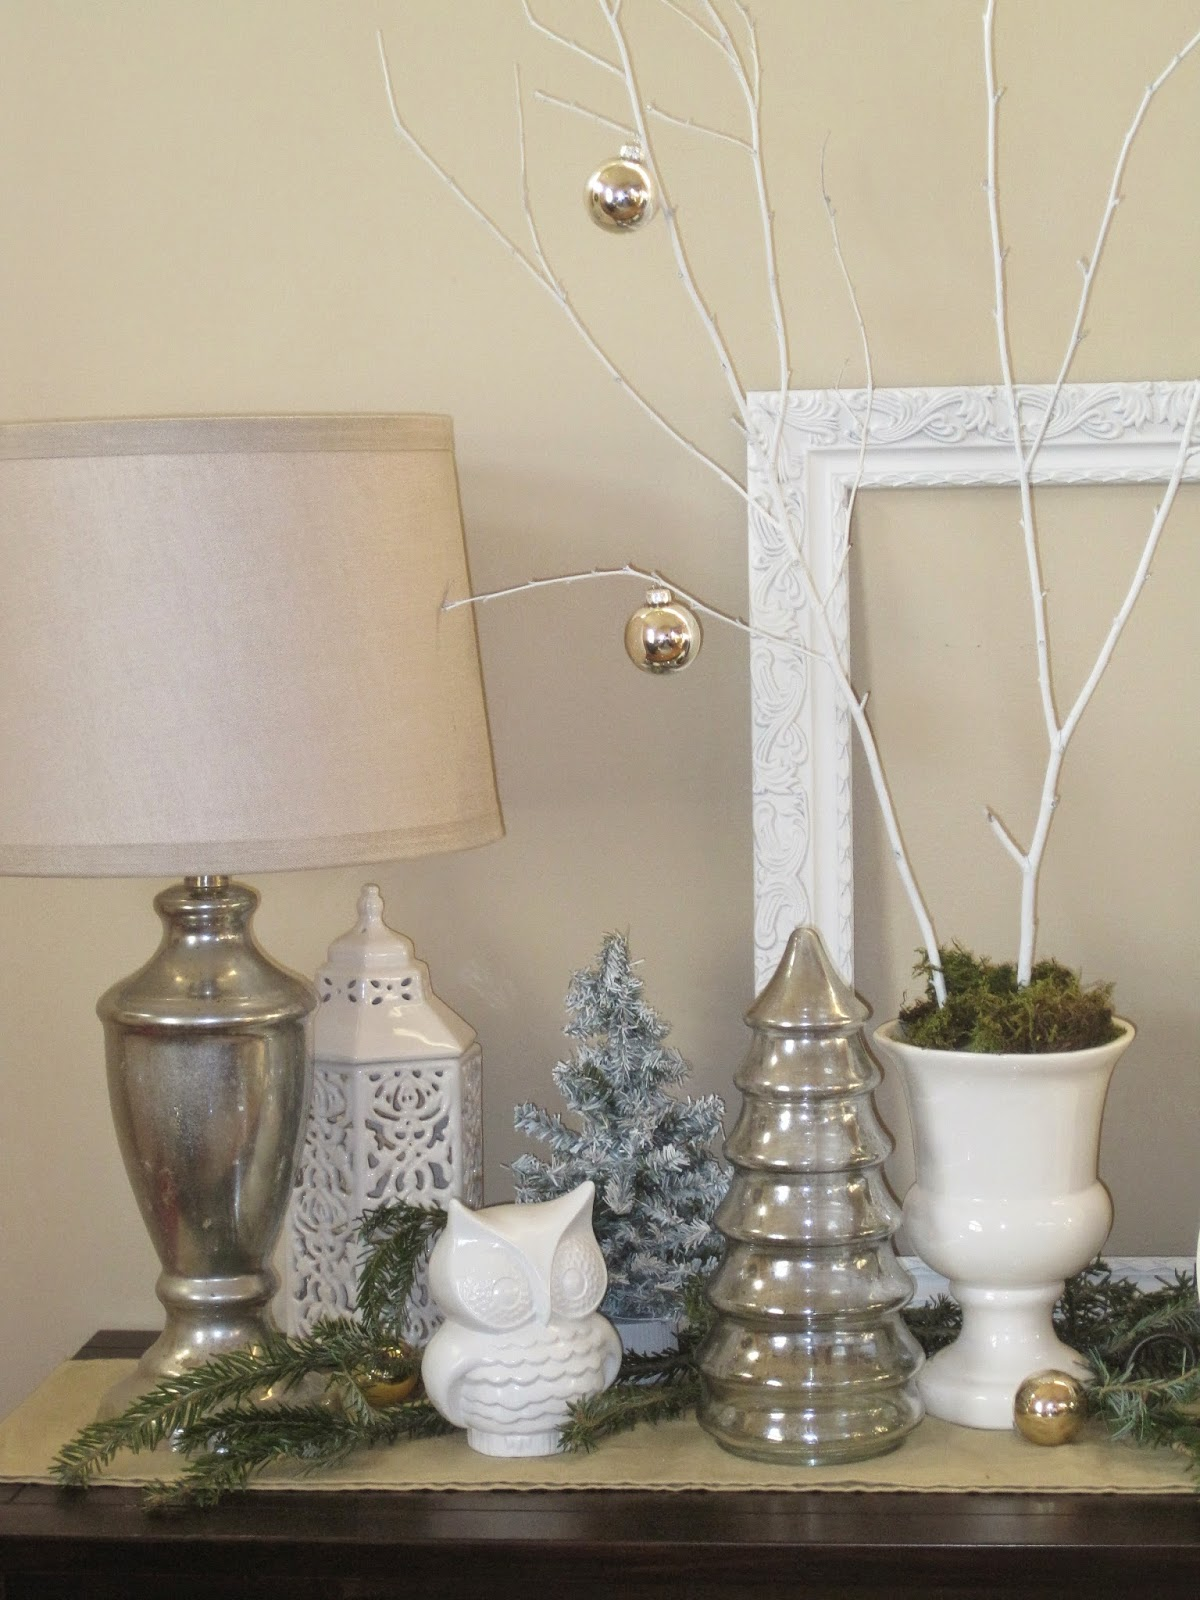 http://decoratedchaos.blogspot.com/2012/12/christmas-entry-table.html